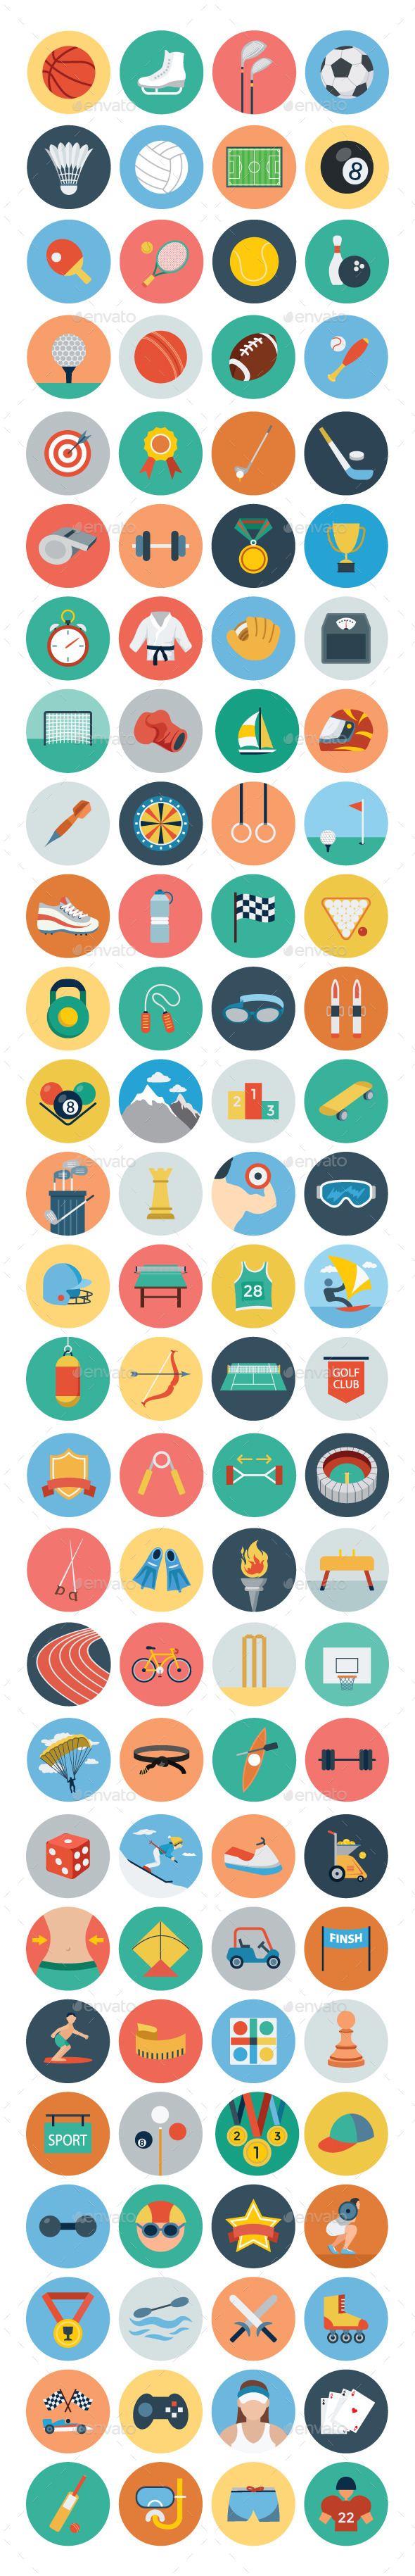 GraphicRiver 100& Sports Flat Icons 10534687